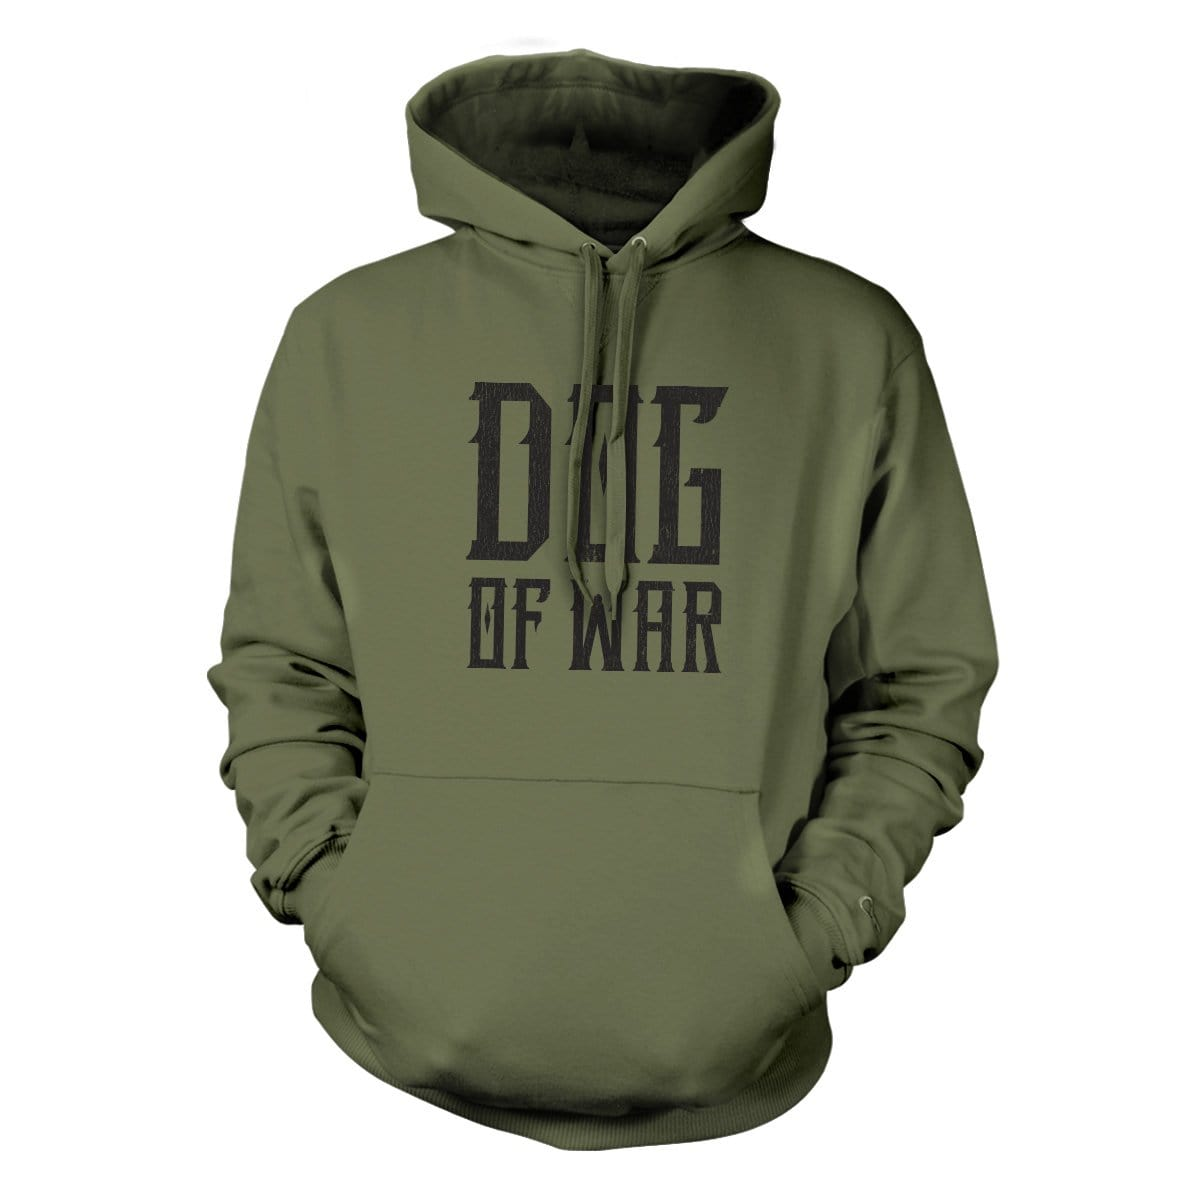 Dog of War Hoodie - Military Green - Hoodies - Pipe Hitters Union